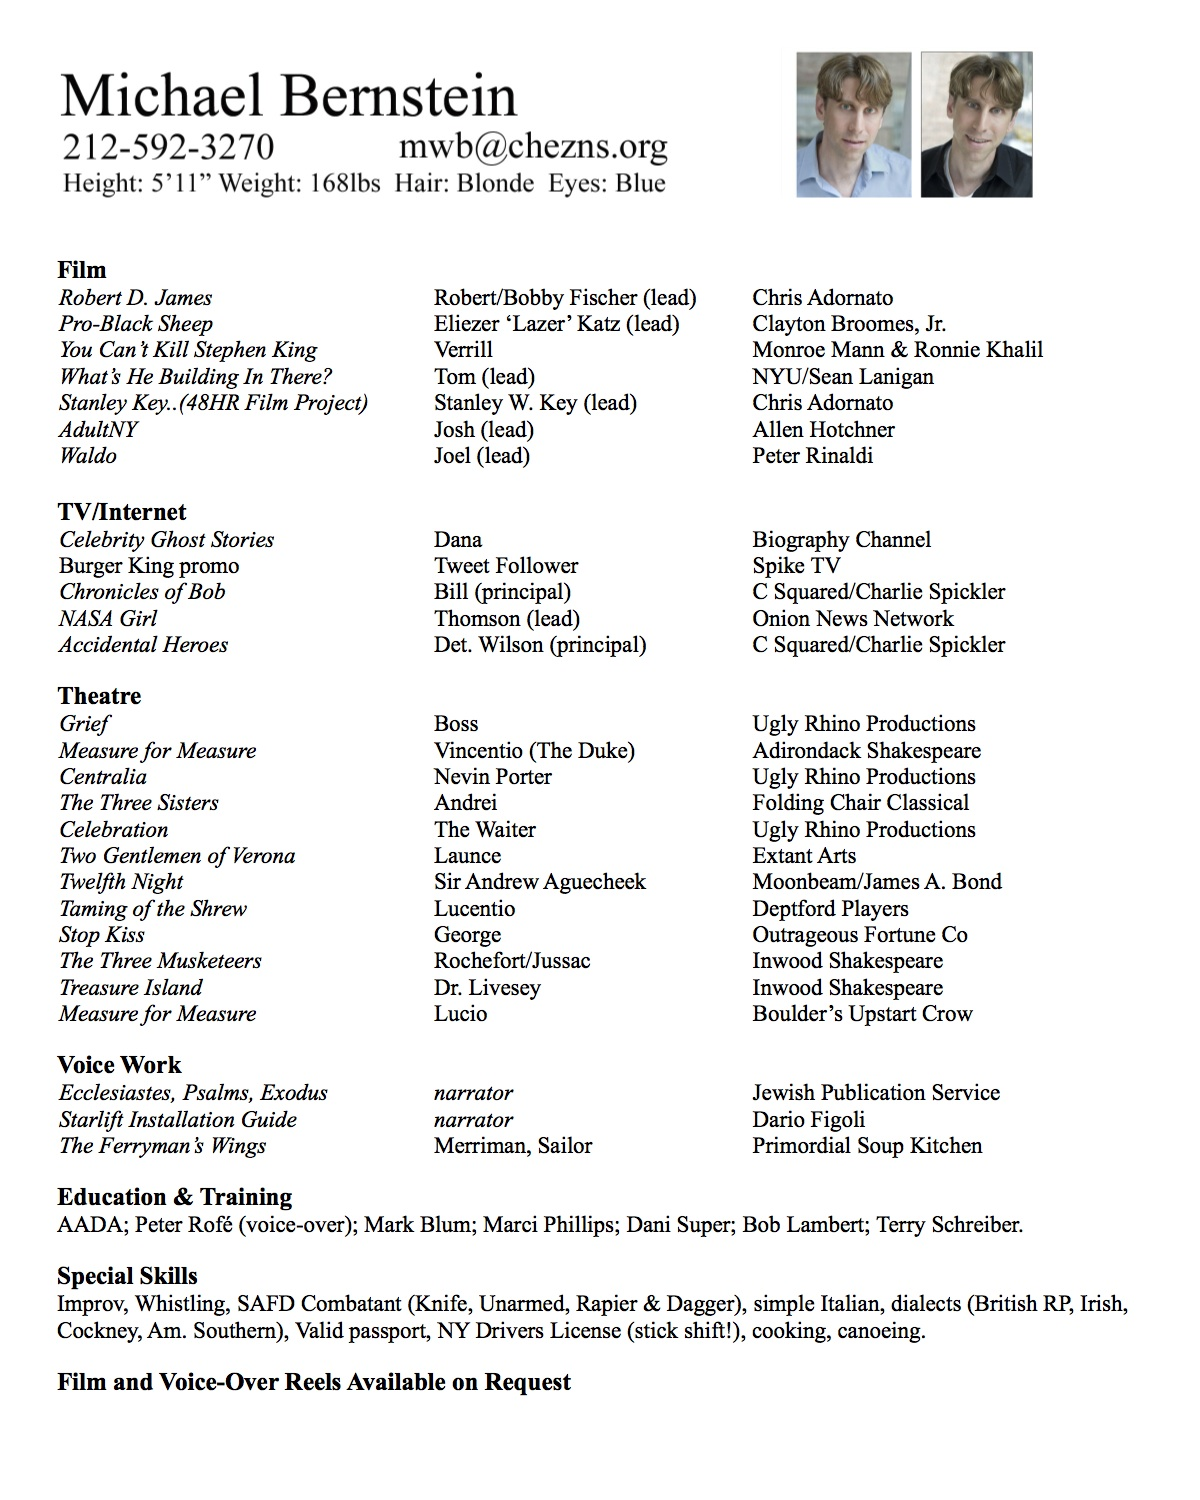 Resumes Michael Bernstein actor writer and more